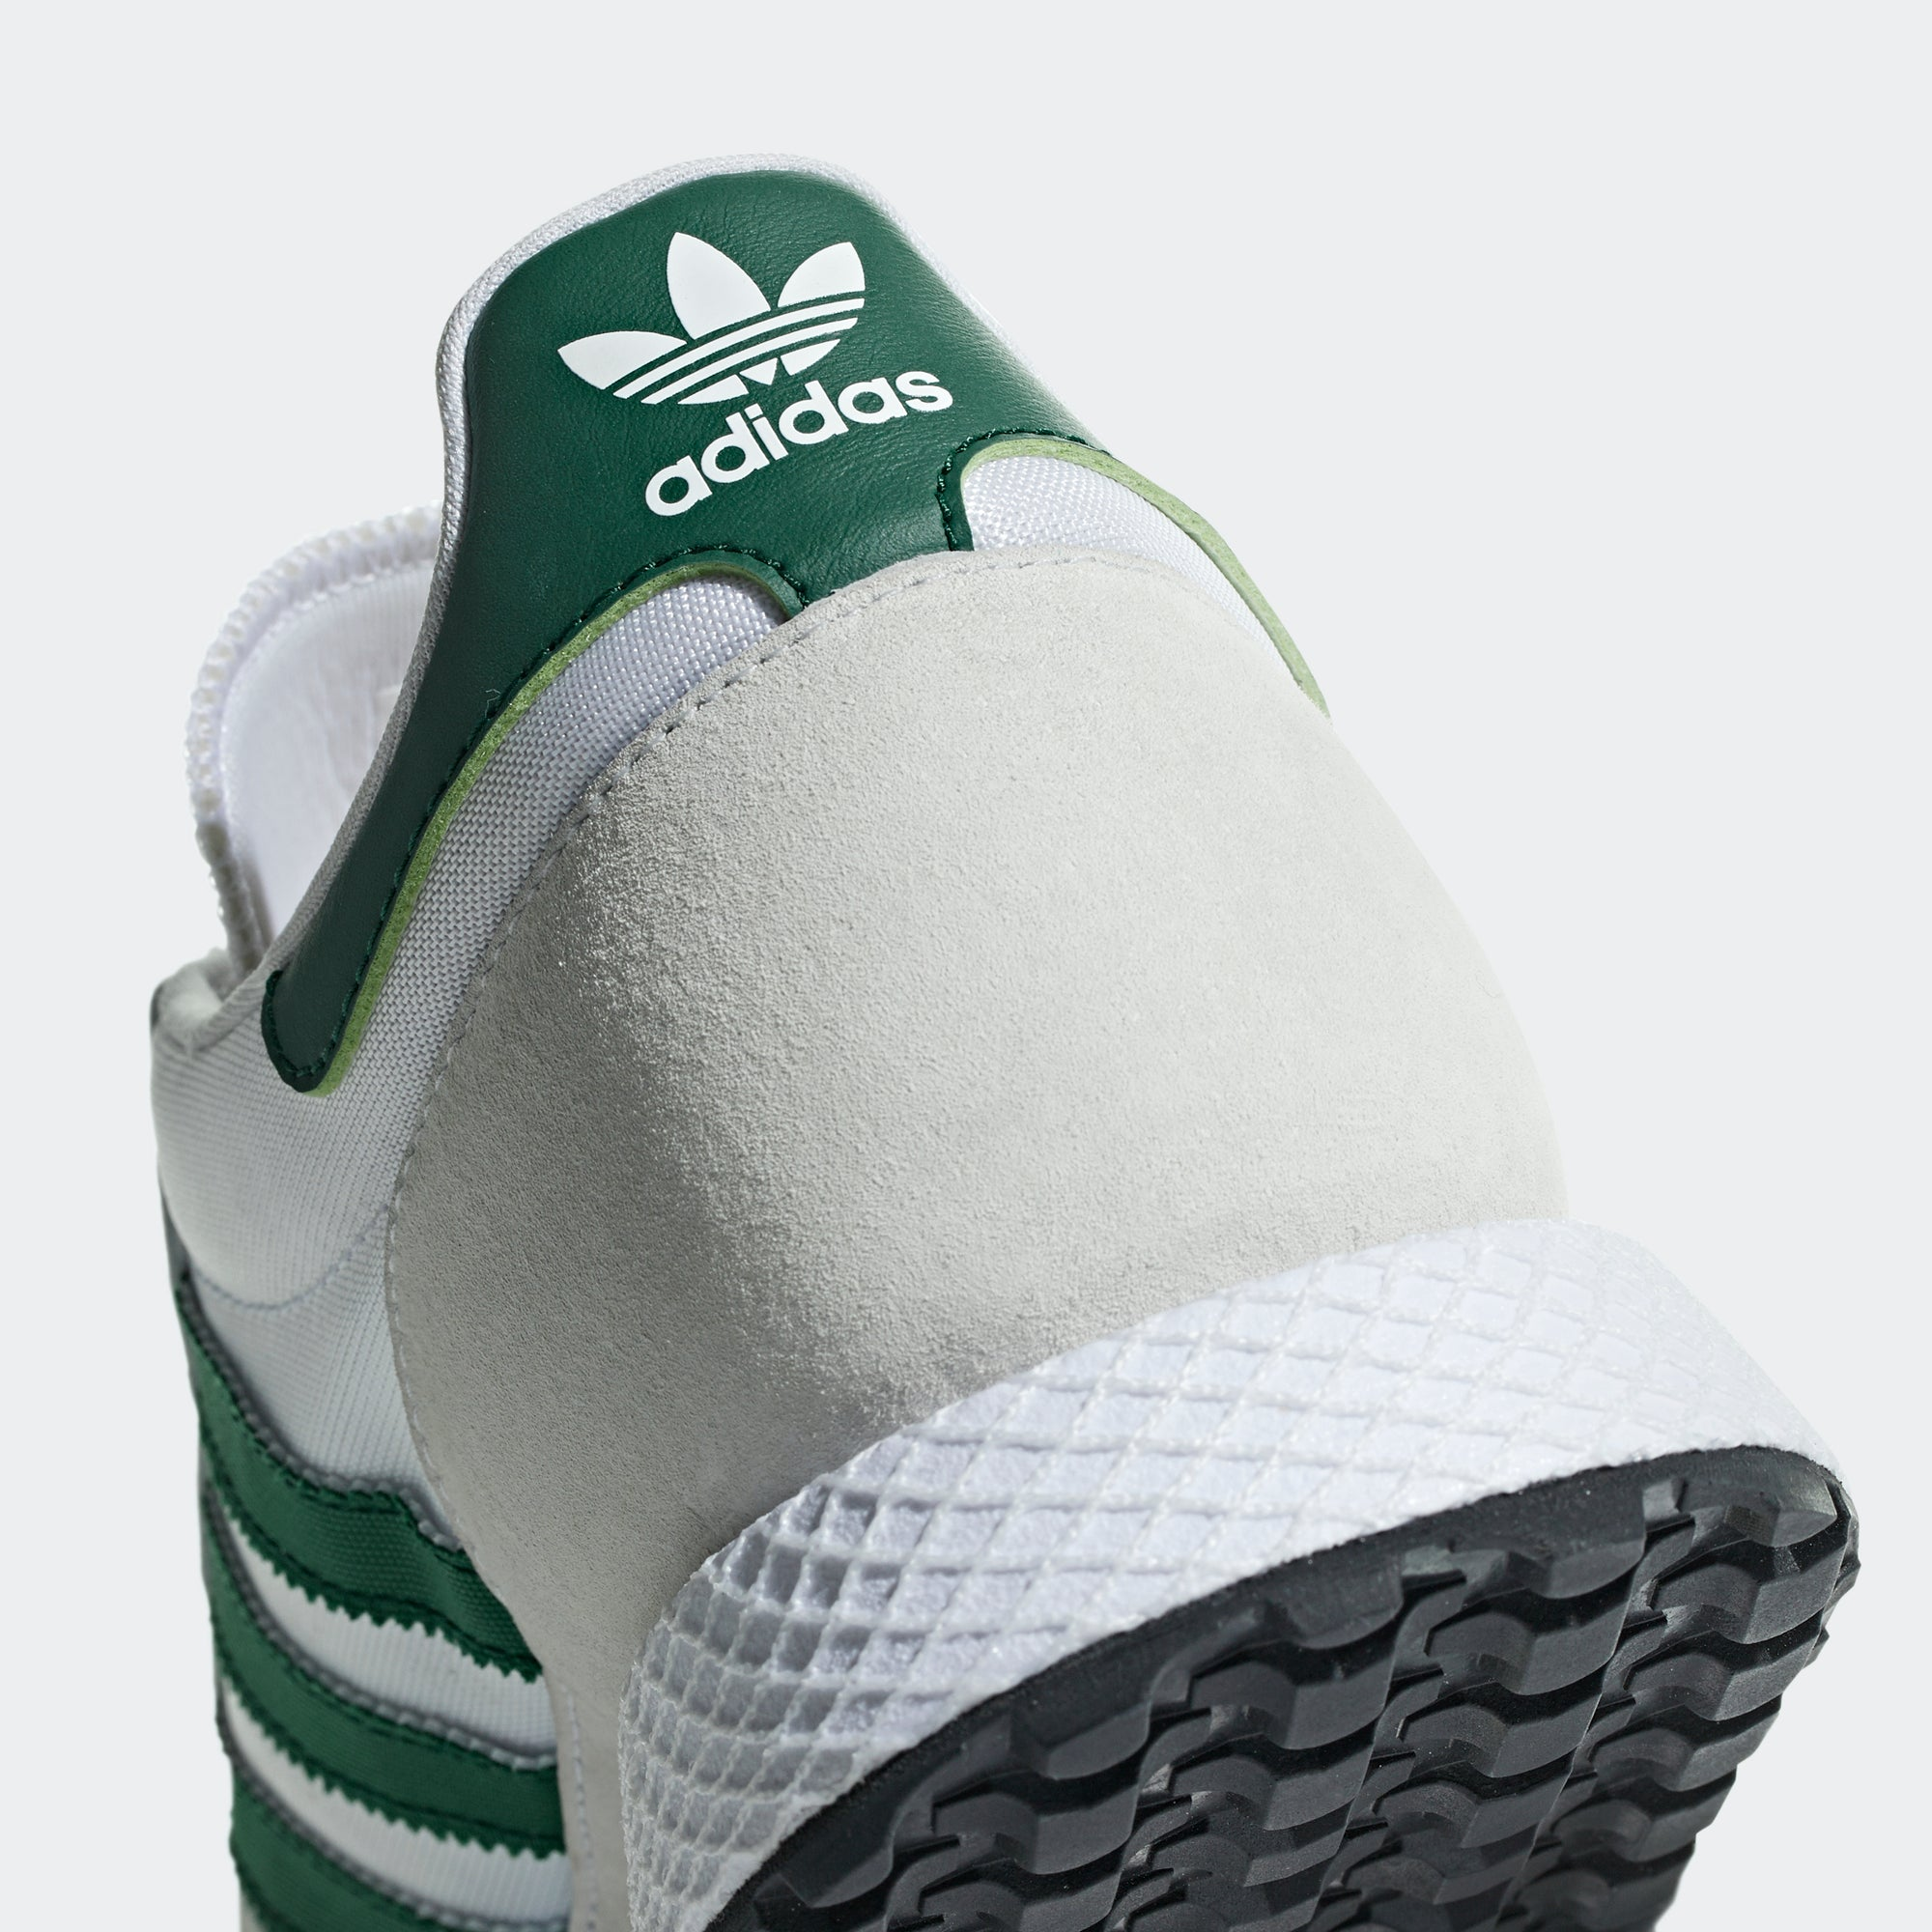 5c72dadc7f5 adidas Forest Grove Shoes White Green B41546 | Chicago City Sports